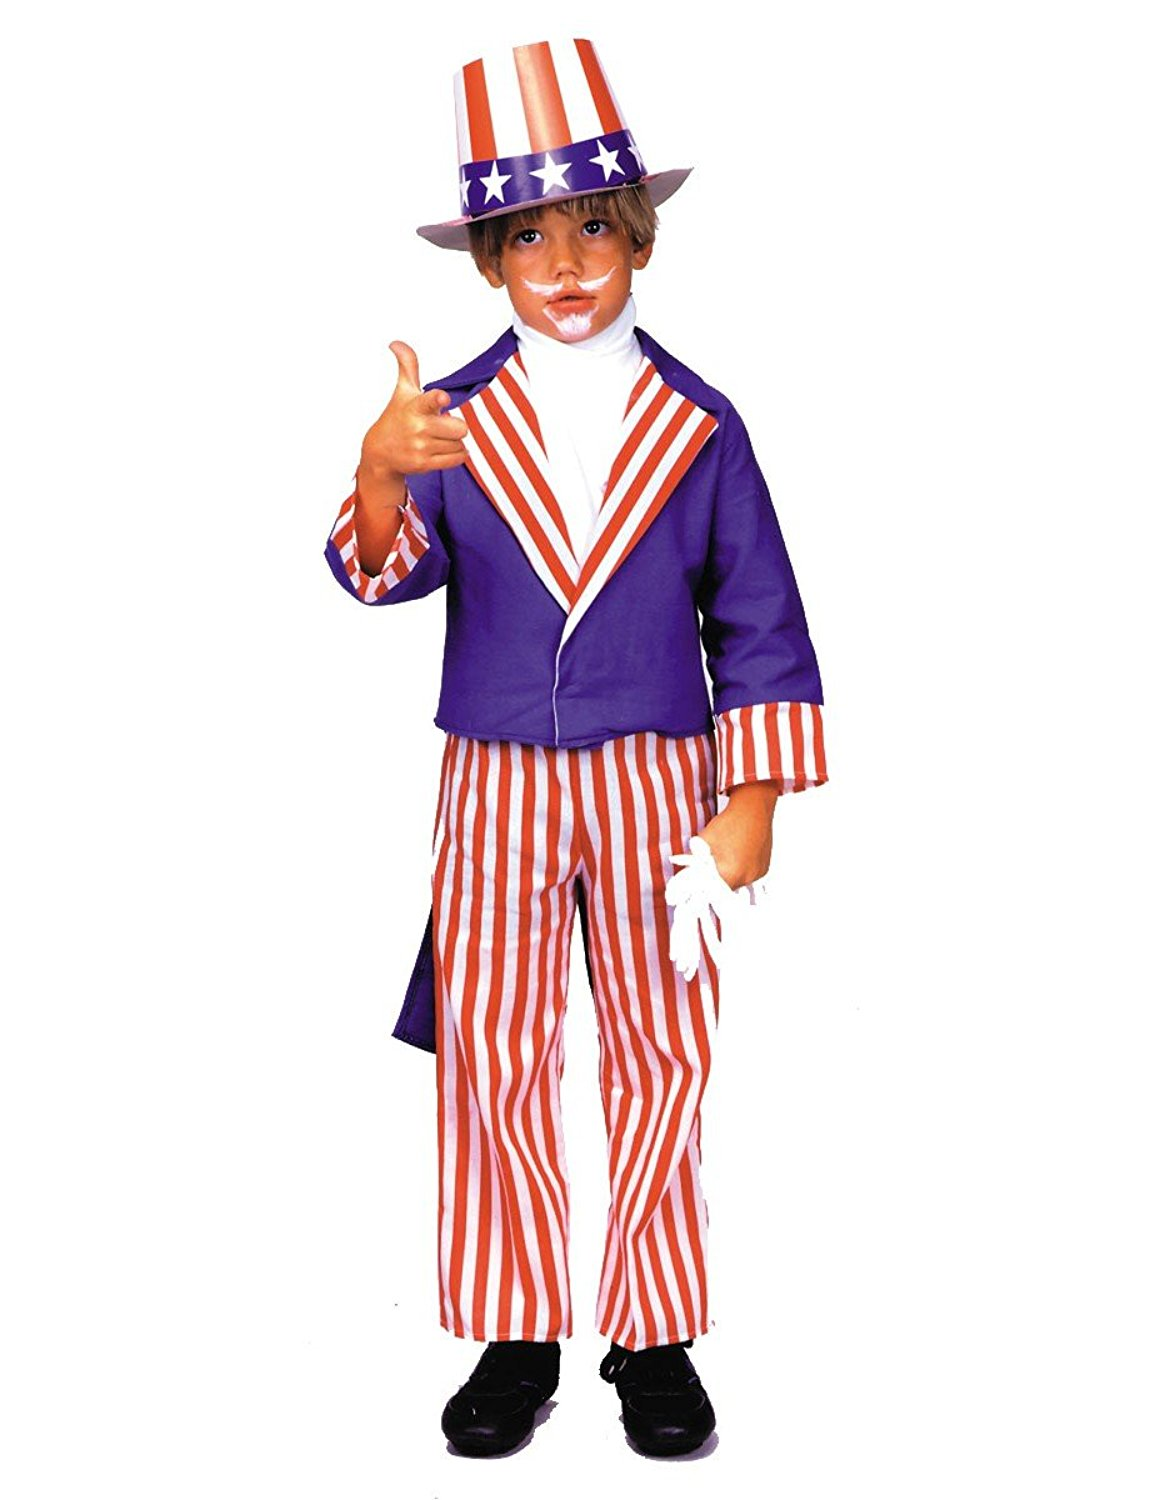 cheap uncle sam costume for adults, find uncle sam costume for